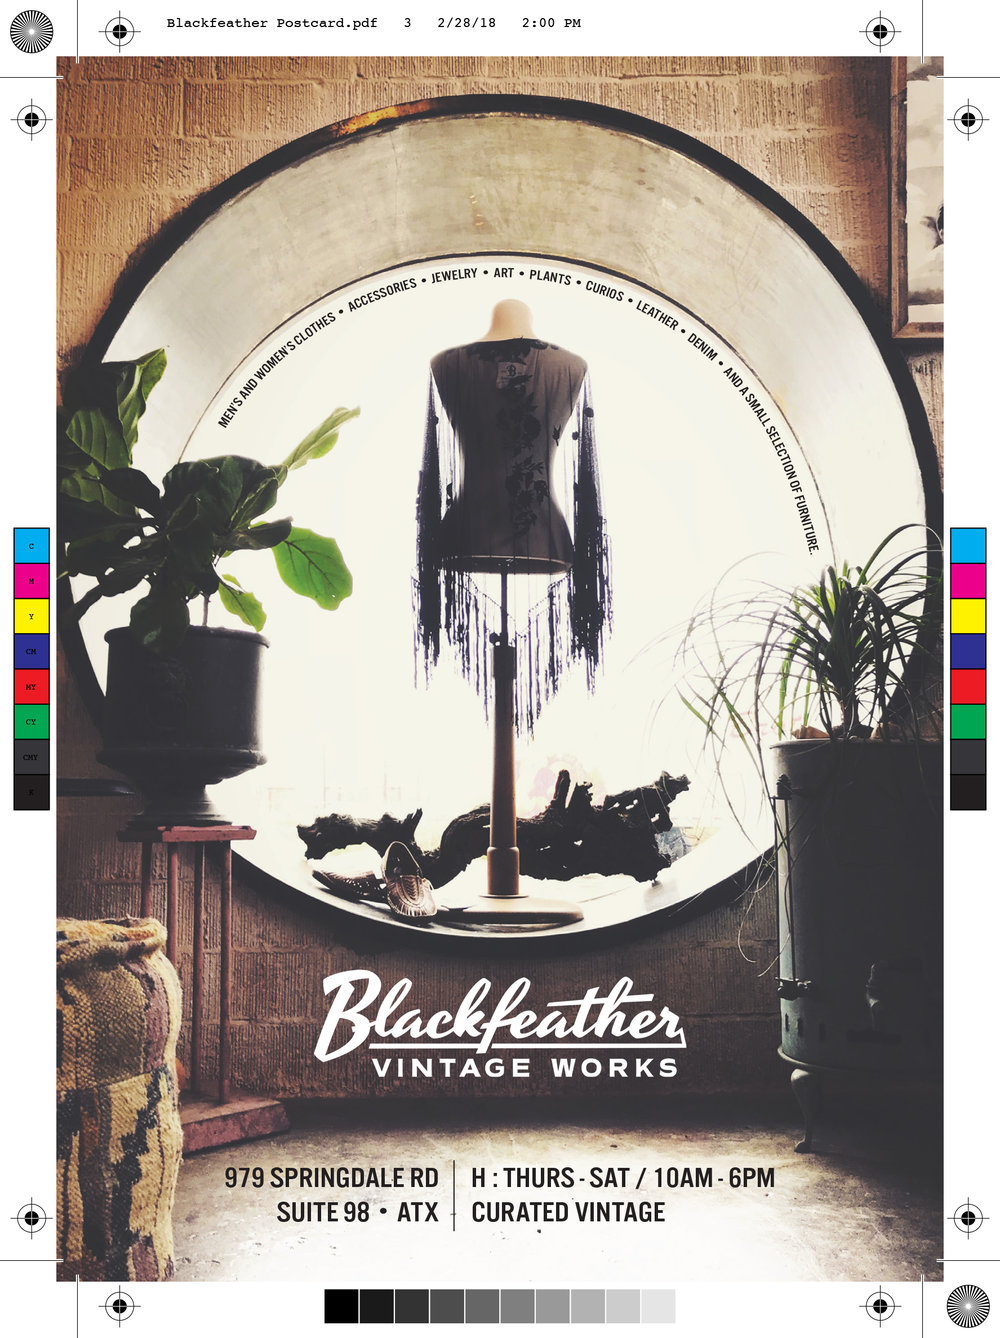 Blackfeather Postcard.jpg